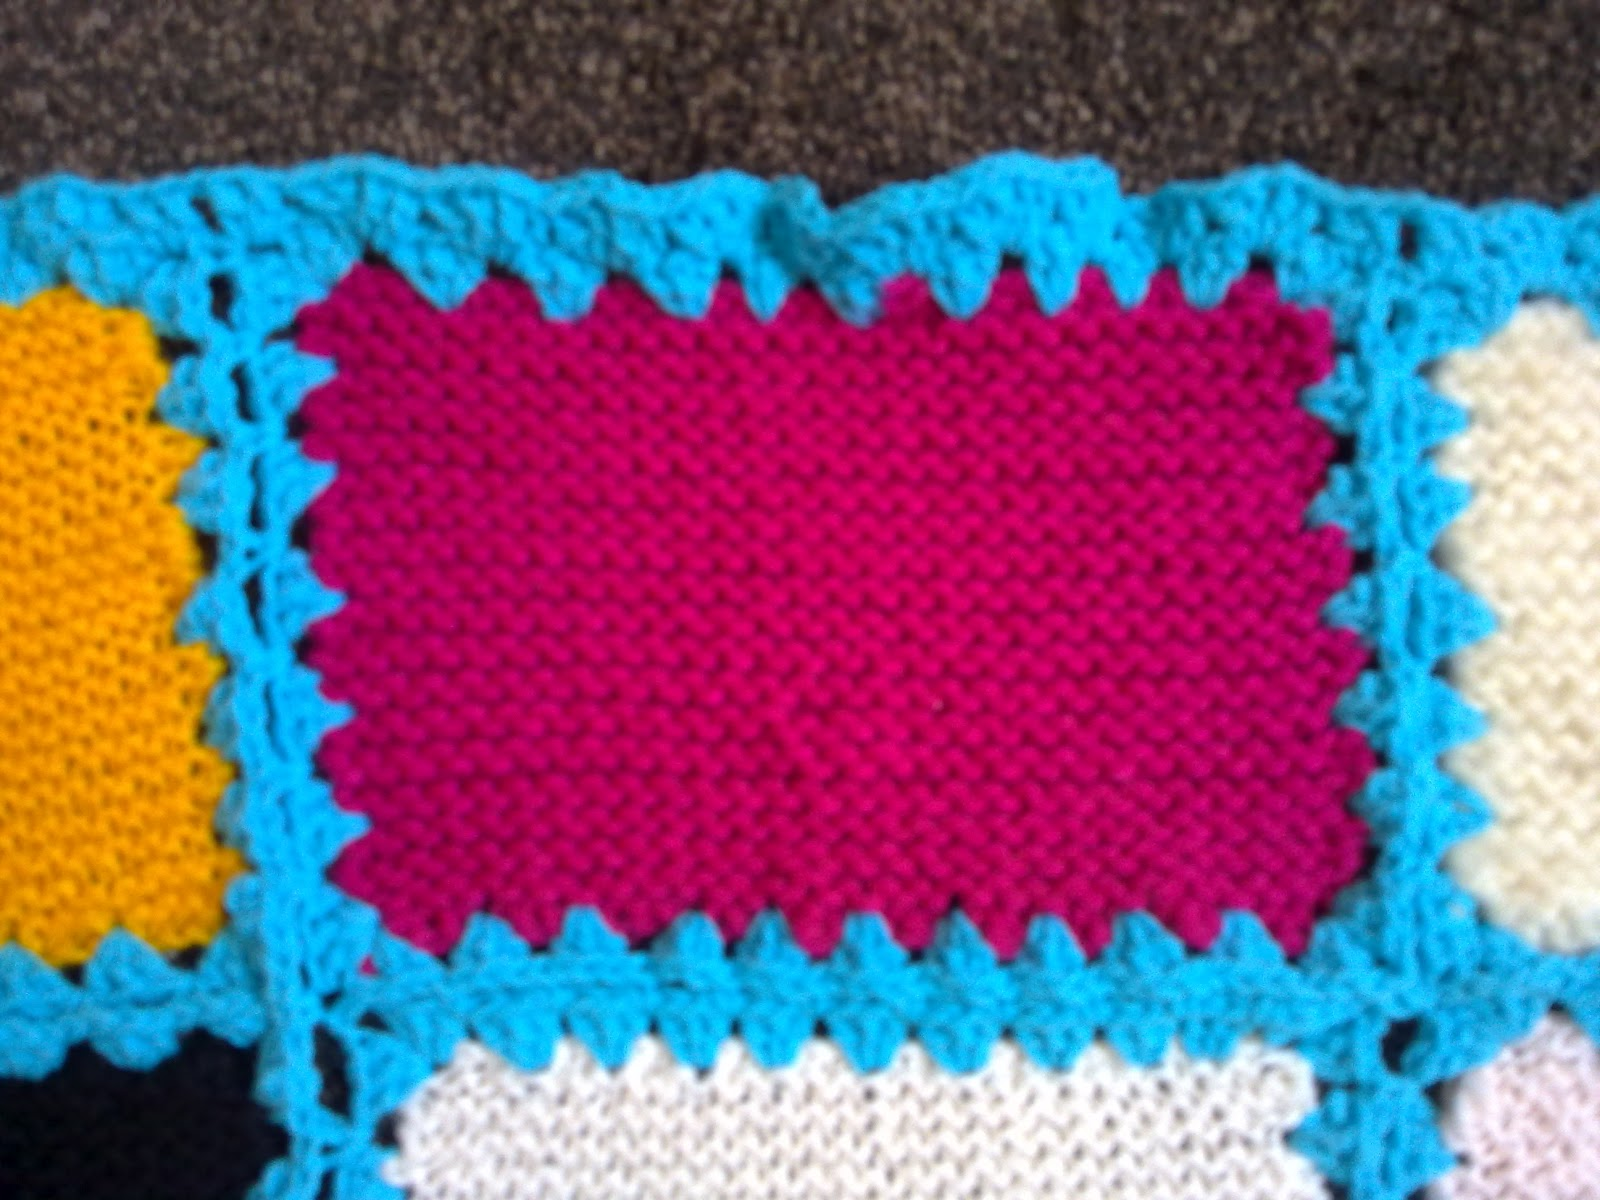 Blanket Stitch Knitted Squares Together : Mums Simply Living Blog: Crocheting knitted squares together